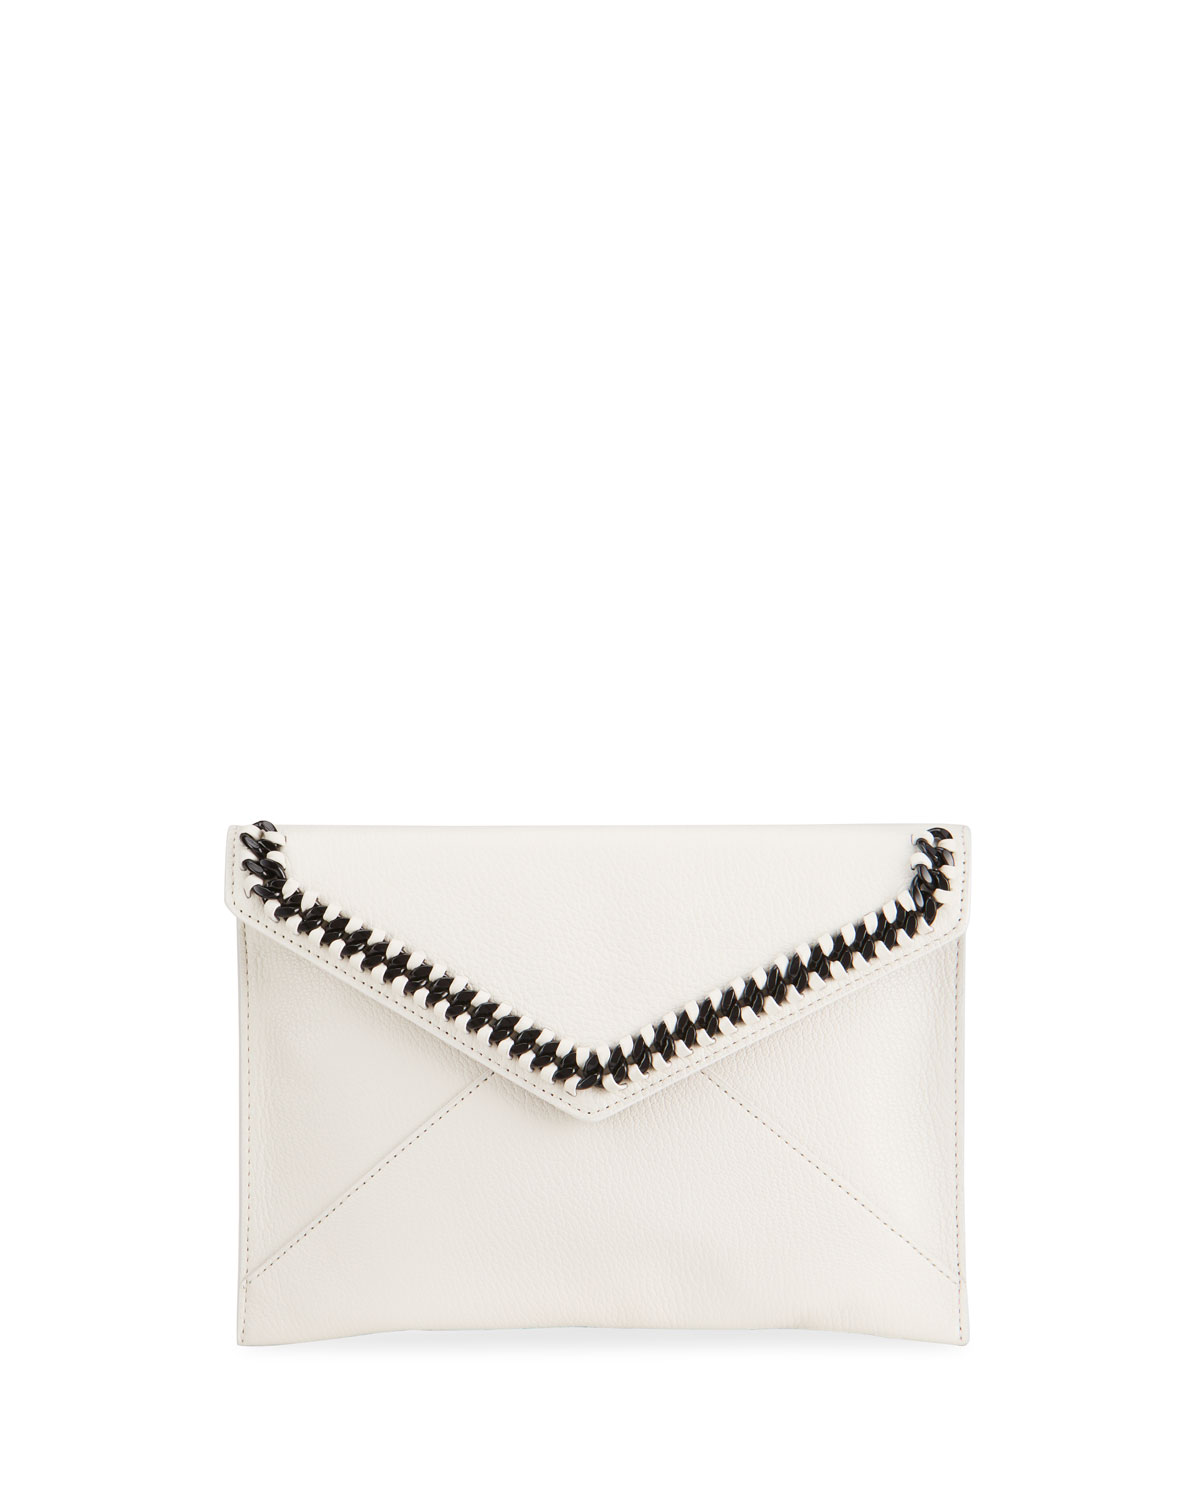 Rebecca Minkoff Leathers LEO CHAIN ENVELOP CLUTCH BAG